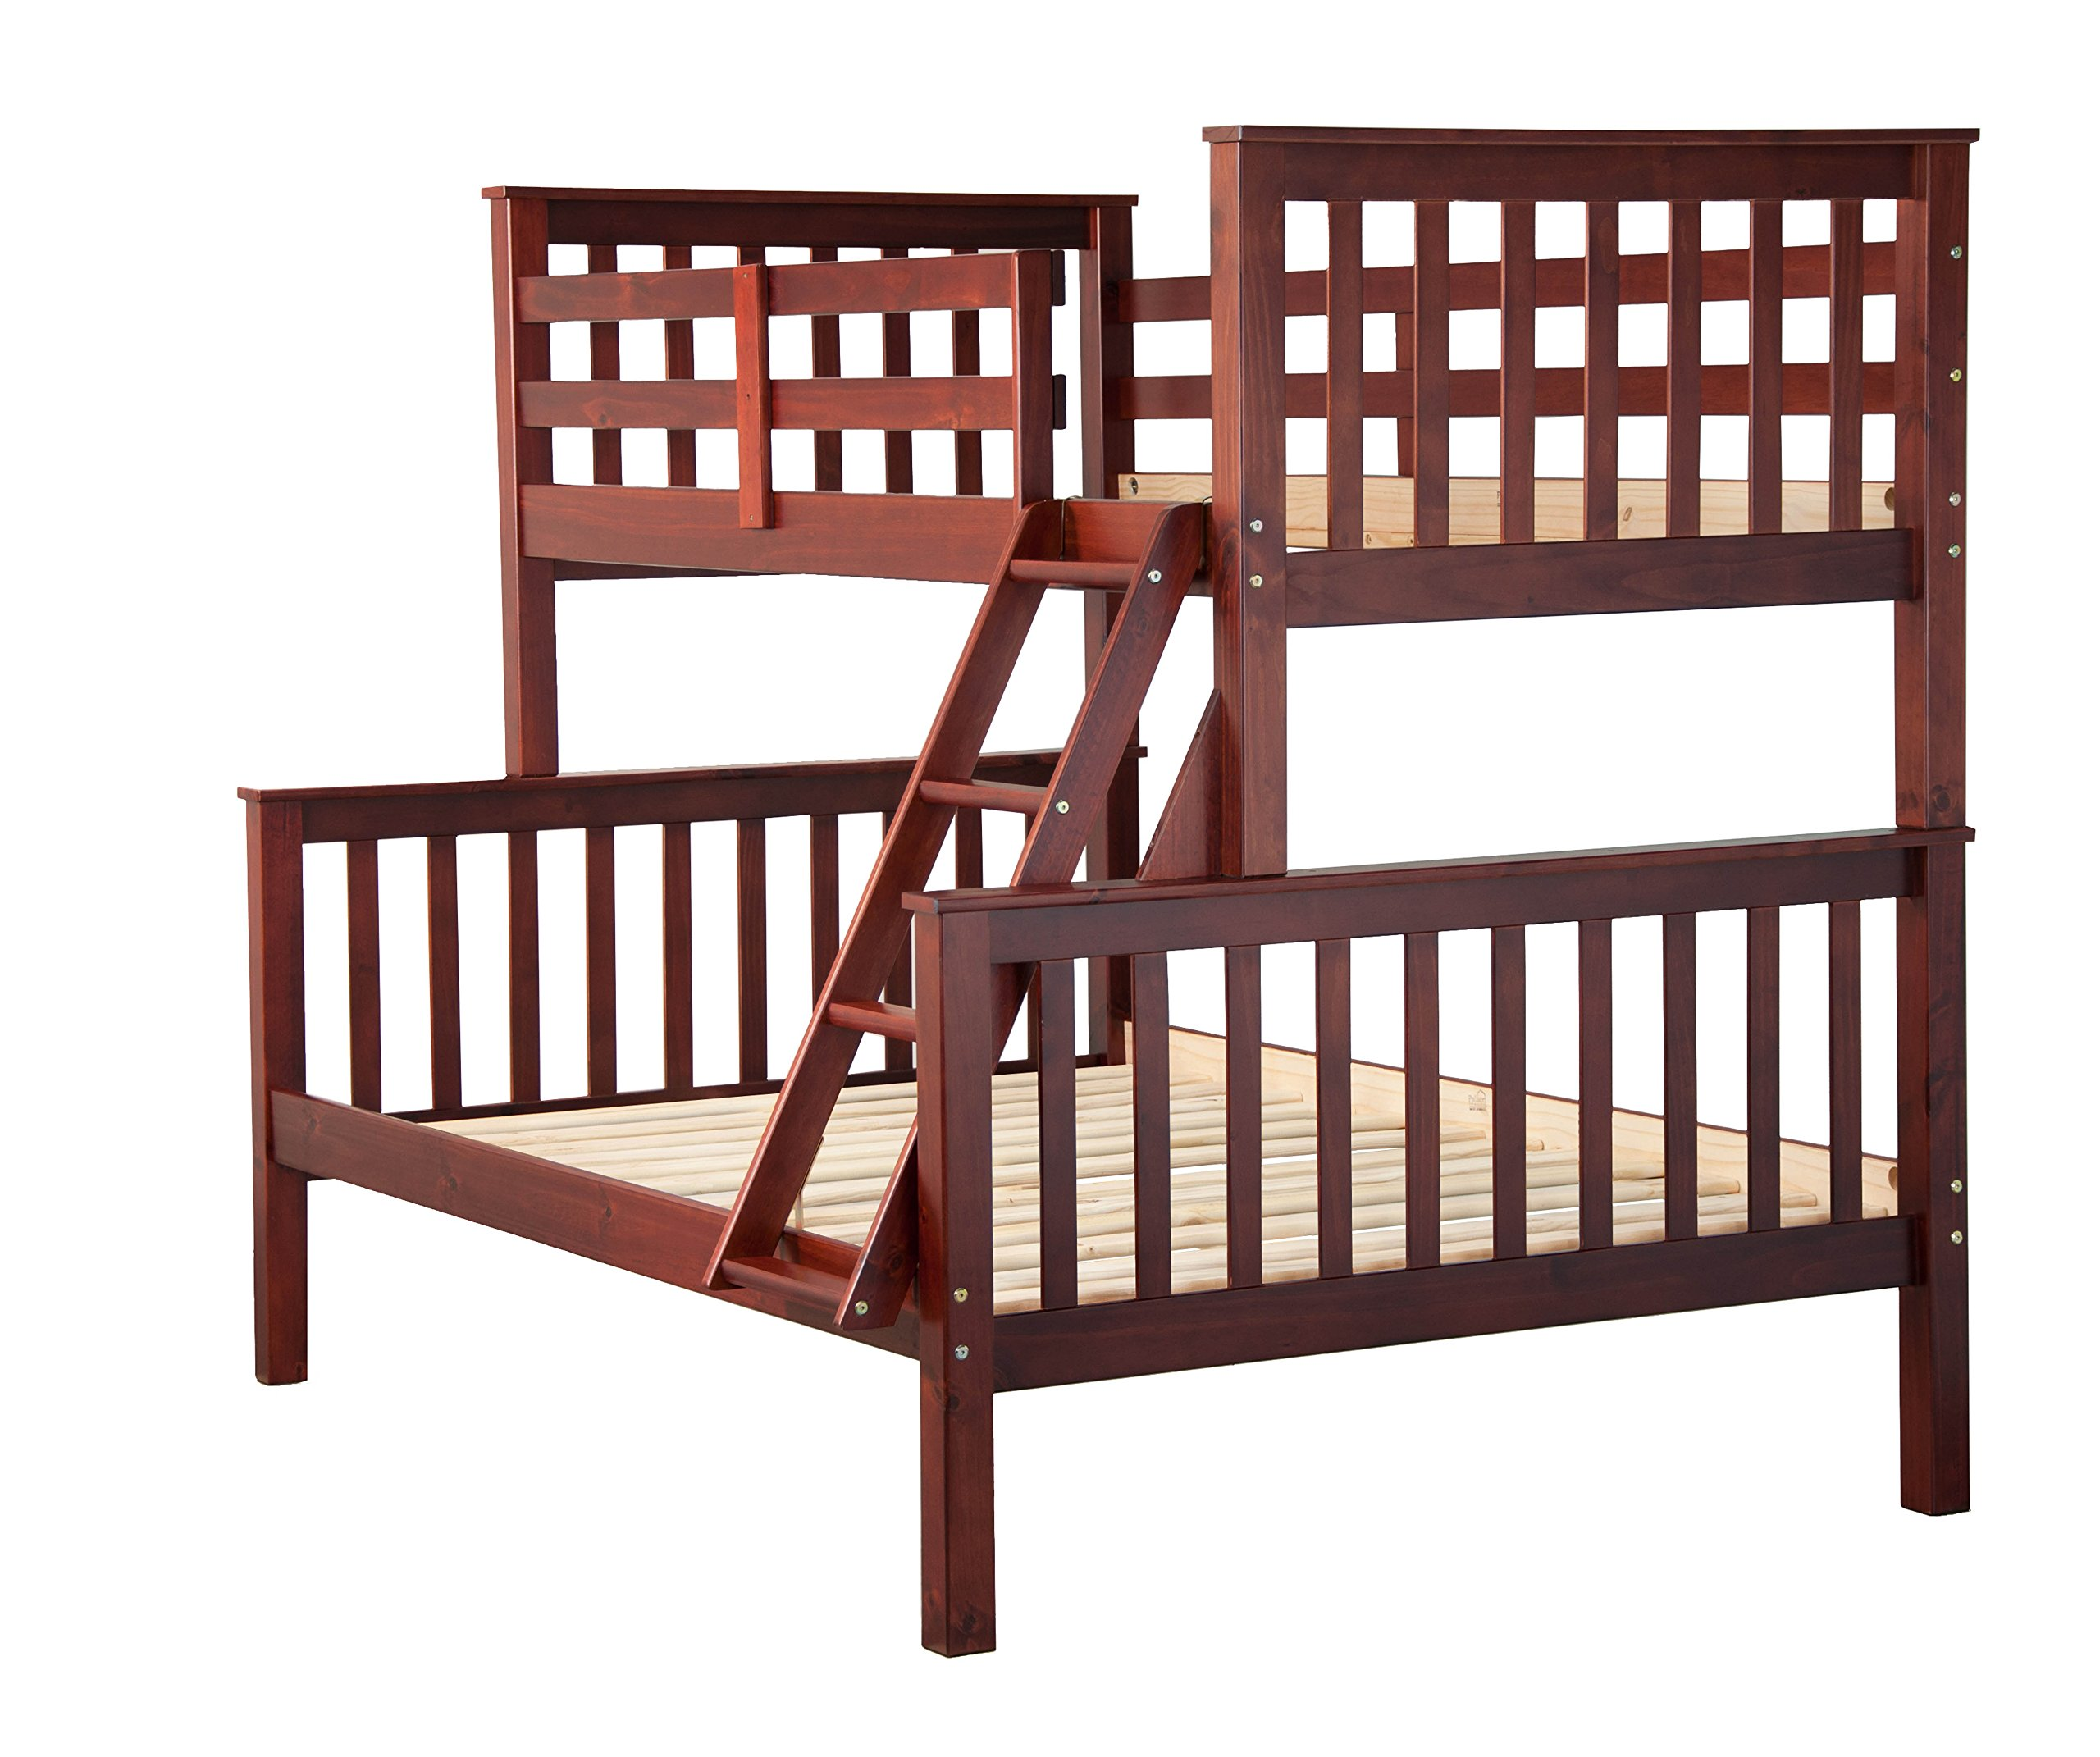 100% Solid Wood Mission Twin Over Full Bunk Bed by Palace Imports, Mahogany, 26 Slats Included. Optional Drawers, Trundle, Rail Guard Sold Separately. Requires Assembly.